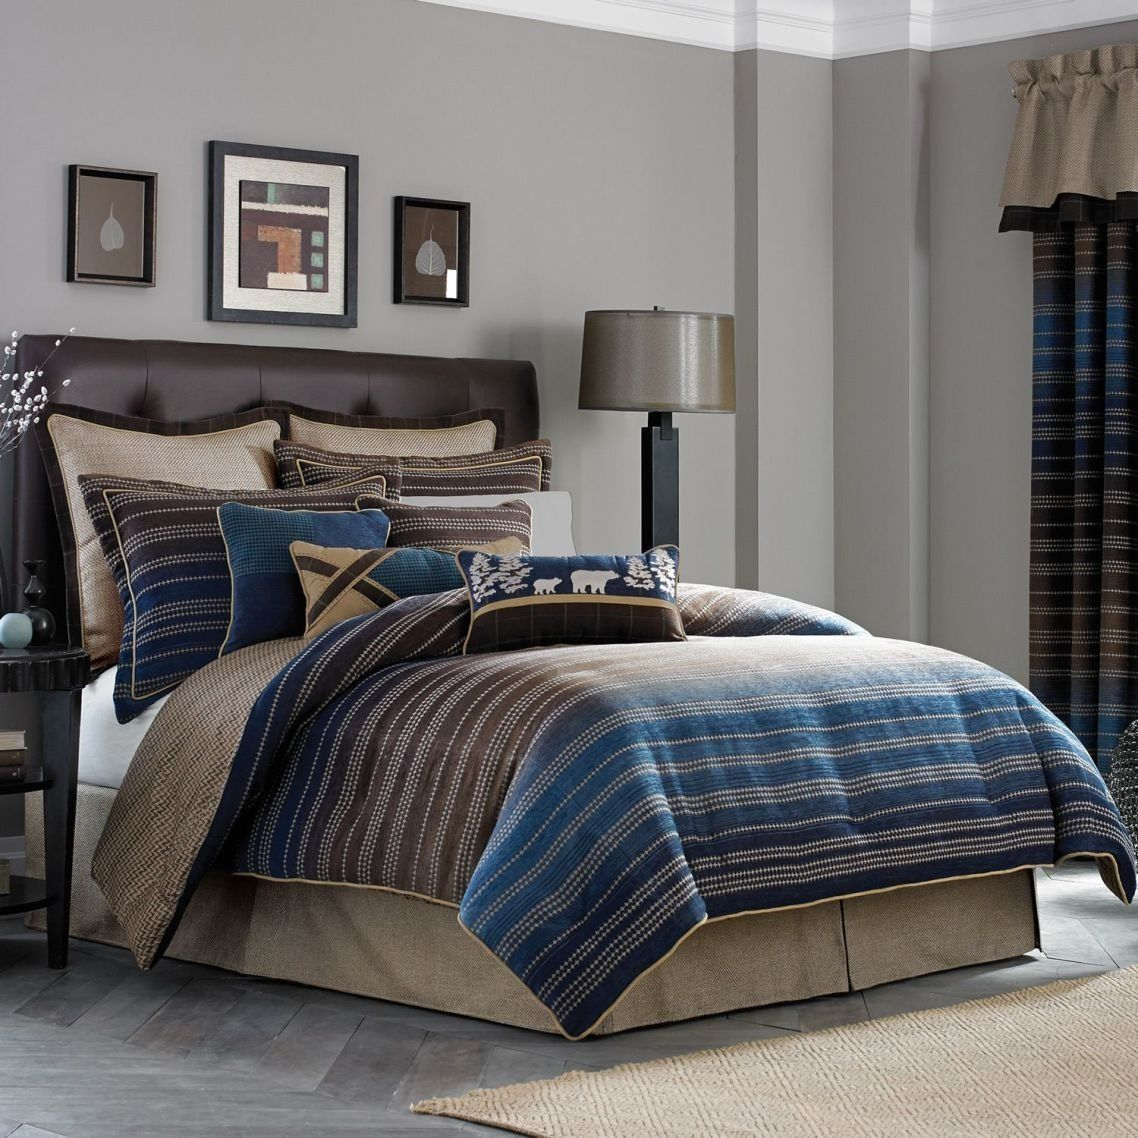 cool good masculine bedding sets  about remodel small home  - cool good masculine bedding sets  about remodel small home decorationideas with masculine bedding sets